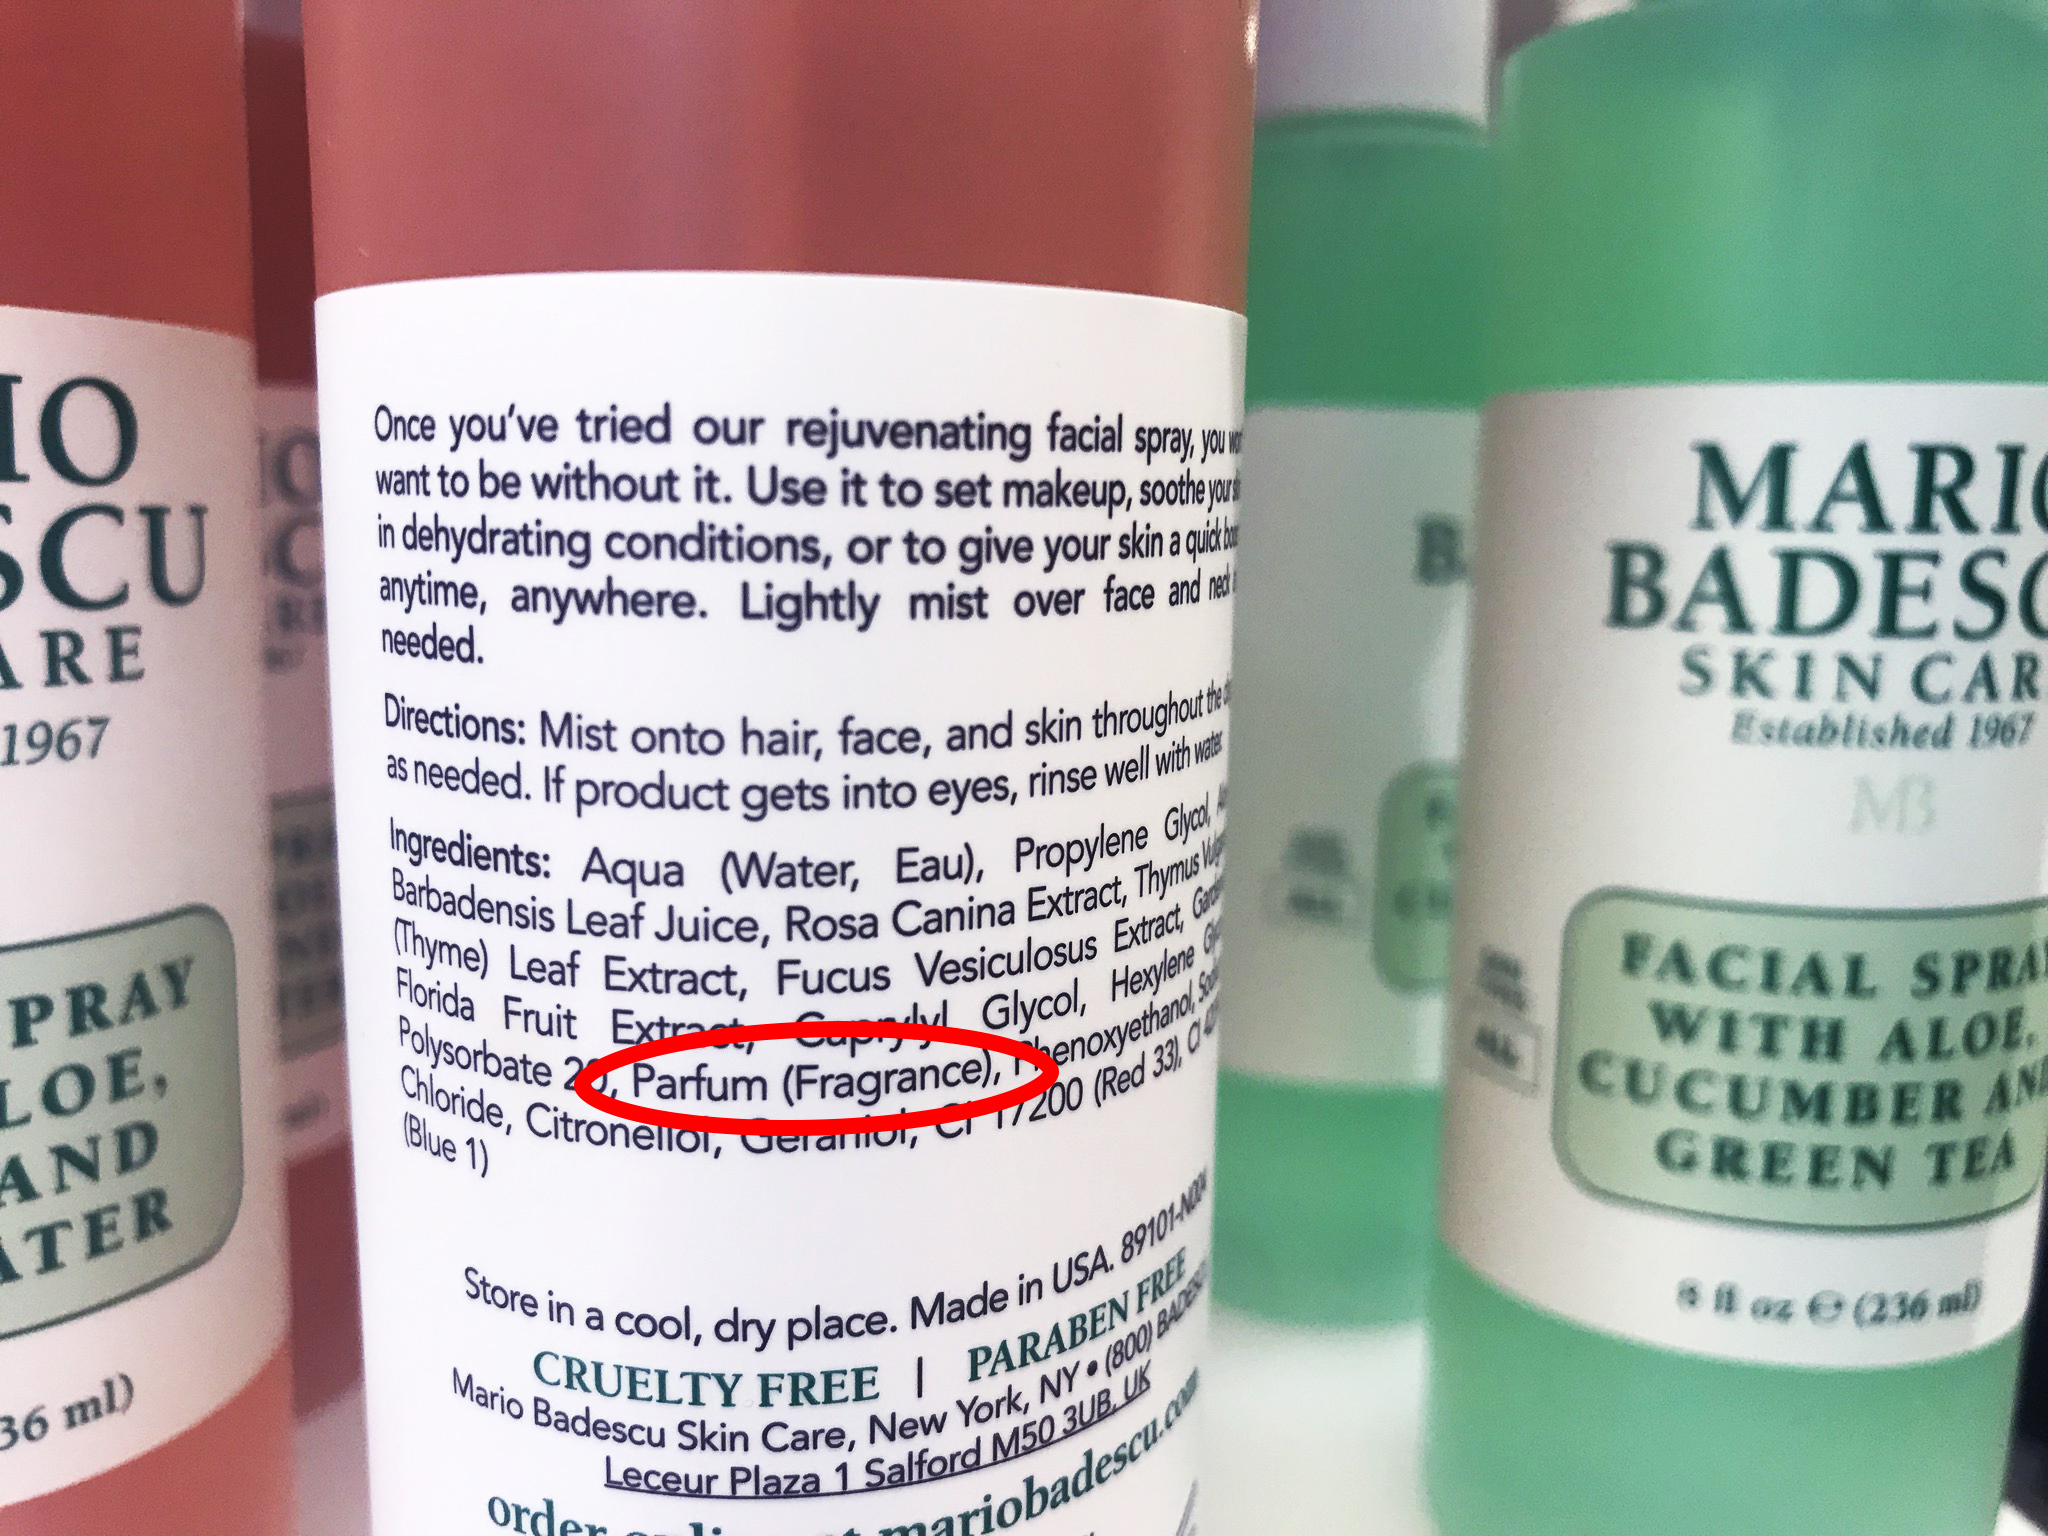 Mario Badescu Skincare - facial spray with aloe, herbs and rosewater. Sounds natural? Not quite.